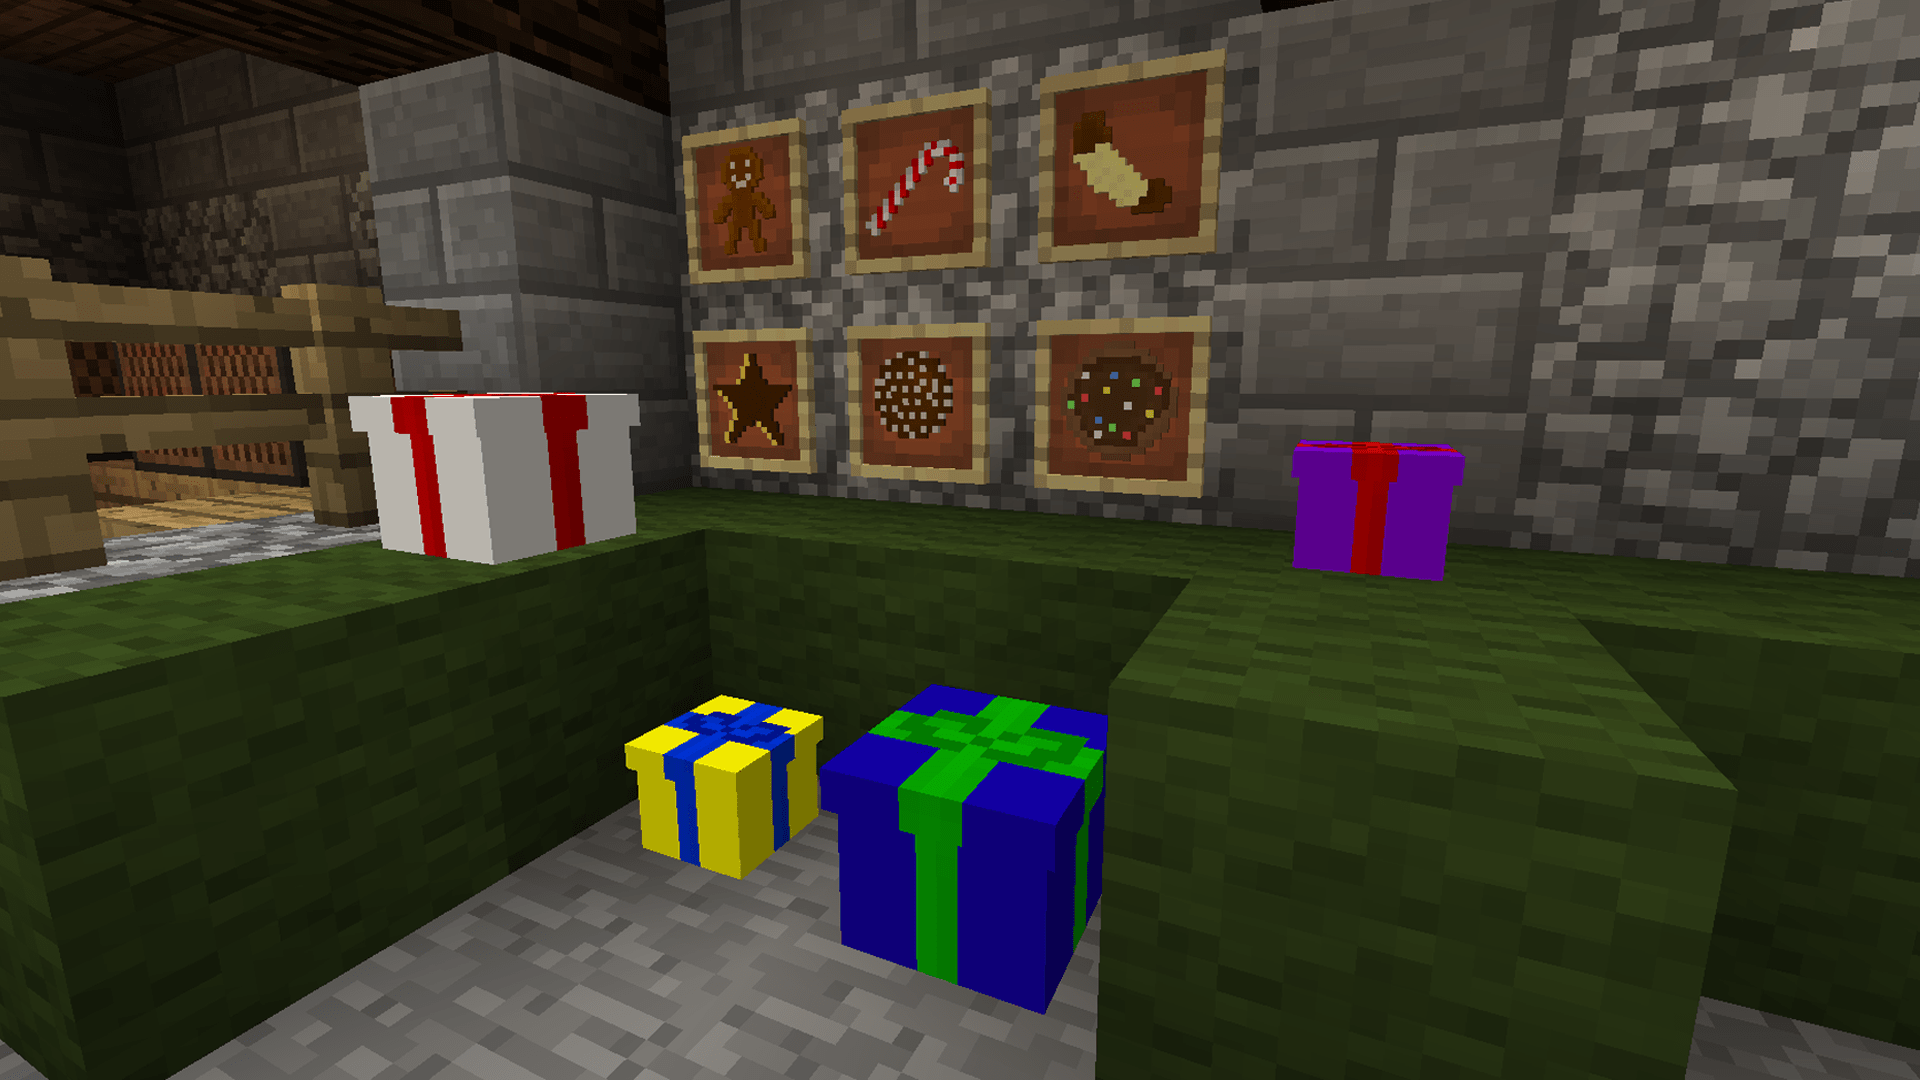 Minecraft Kitchen Mod 1.12.2 Jaffas And More Minecraft Mods